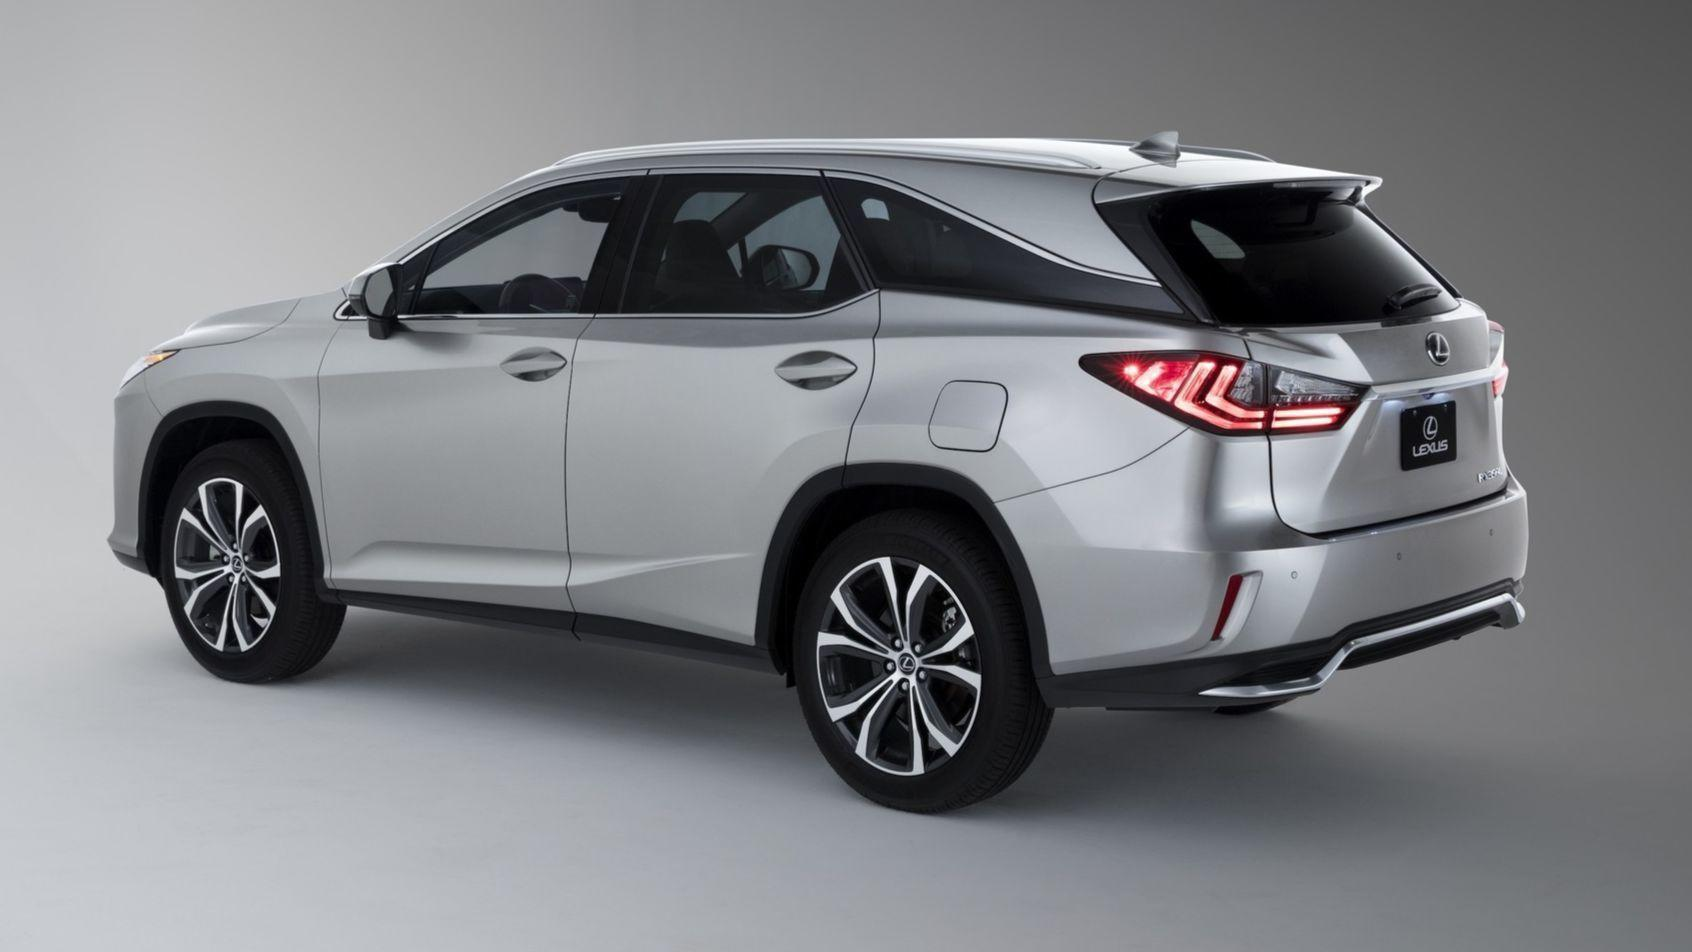 2018 Lexus RX 350L: The 3-row prescription for family travel - The